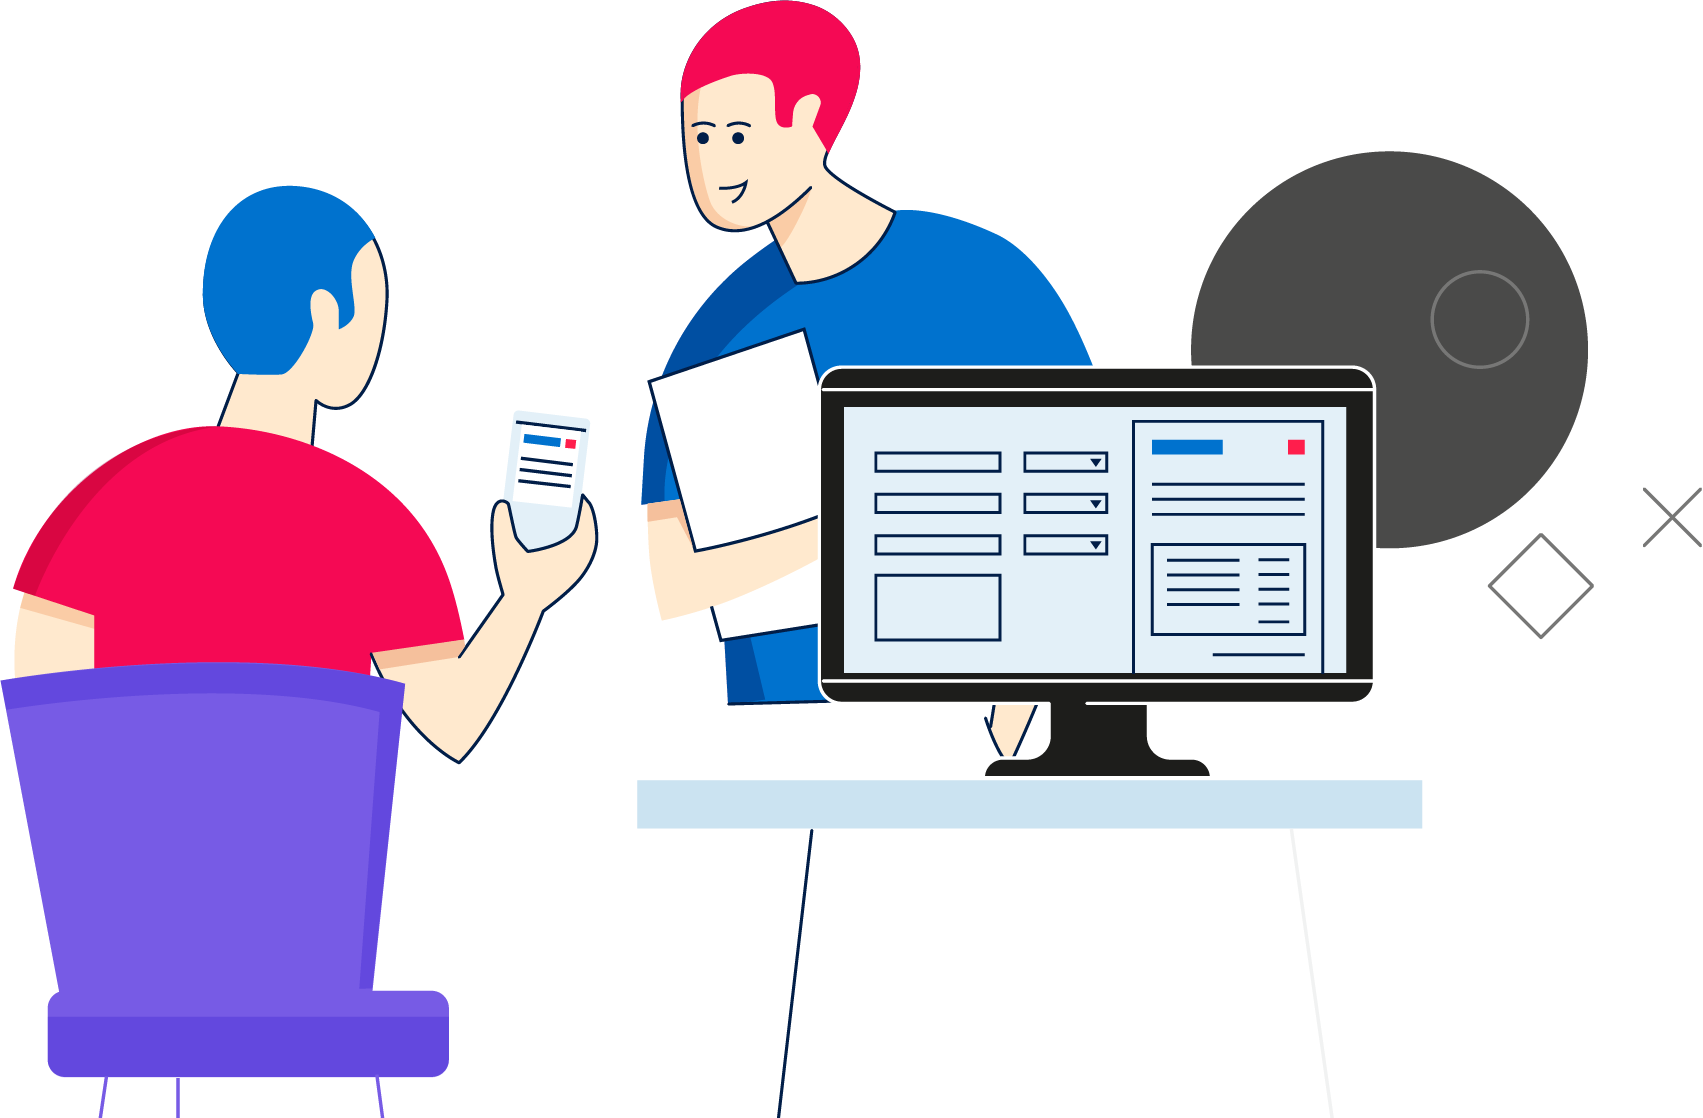 Illustration of people in an office, using AutoEntry on phone and desktop.